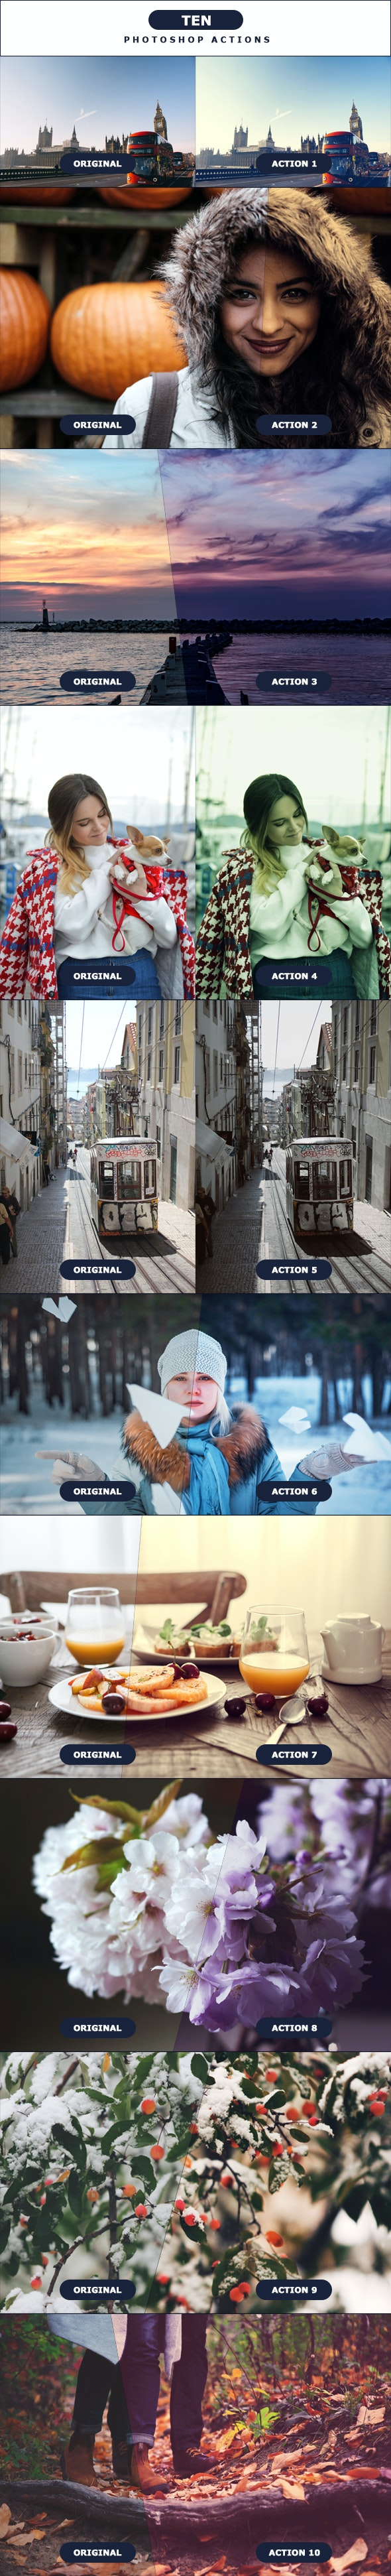 TEN - Photoshop Actions 5 - Photo Effects Actions